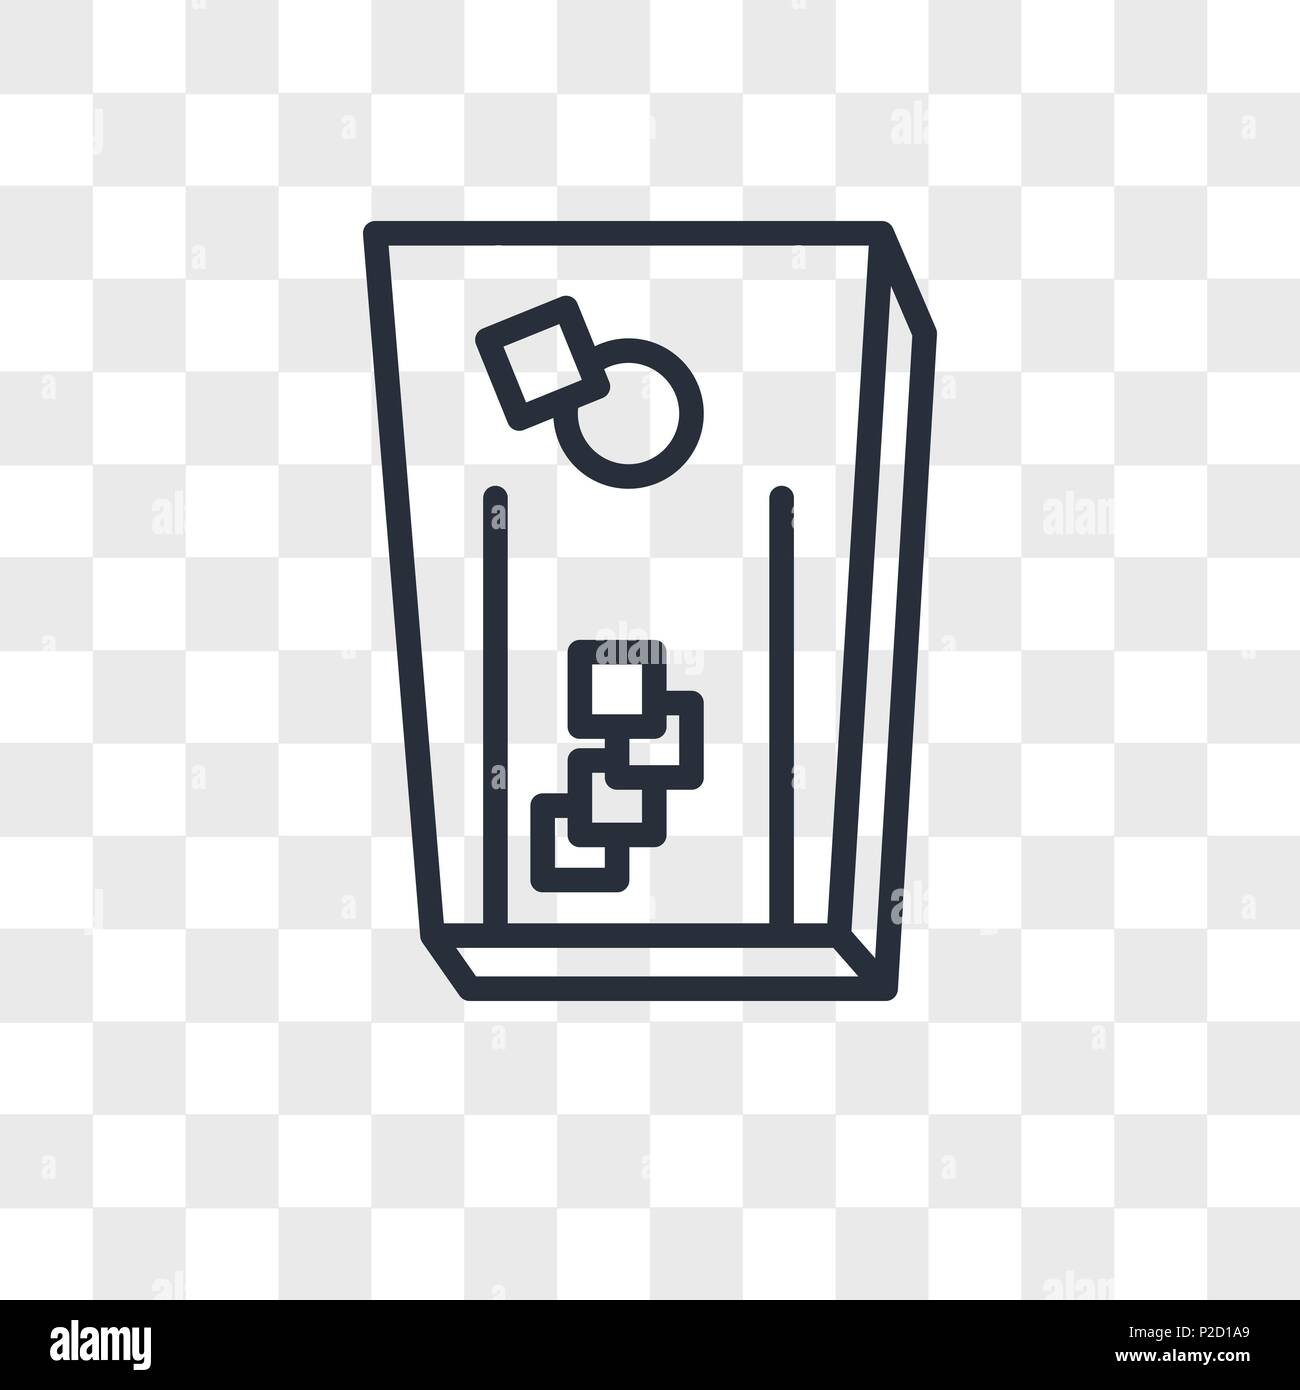 cornhole vector icon isolated on transparent background, cornhole logo concept - Stock Image